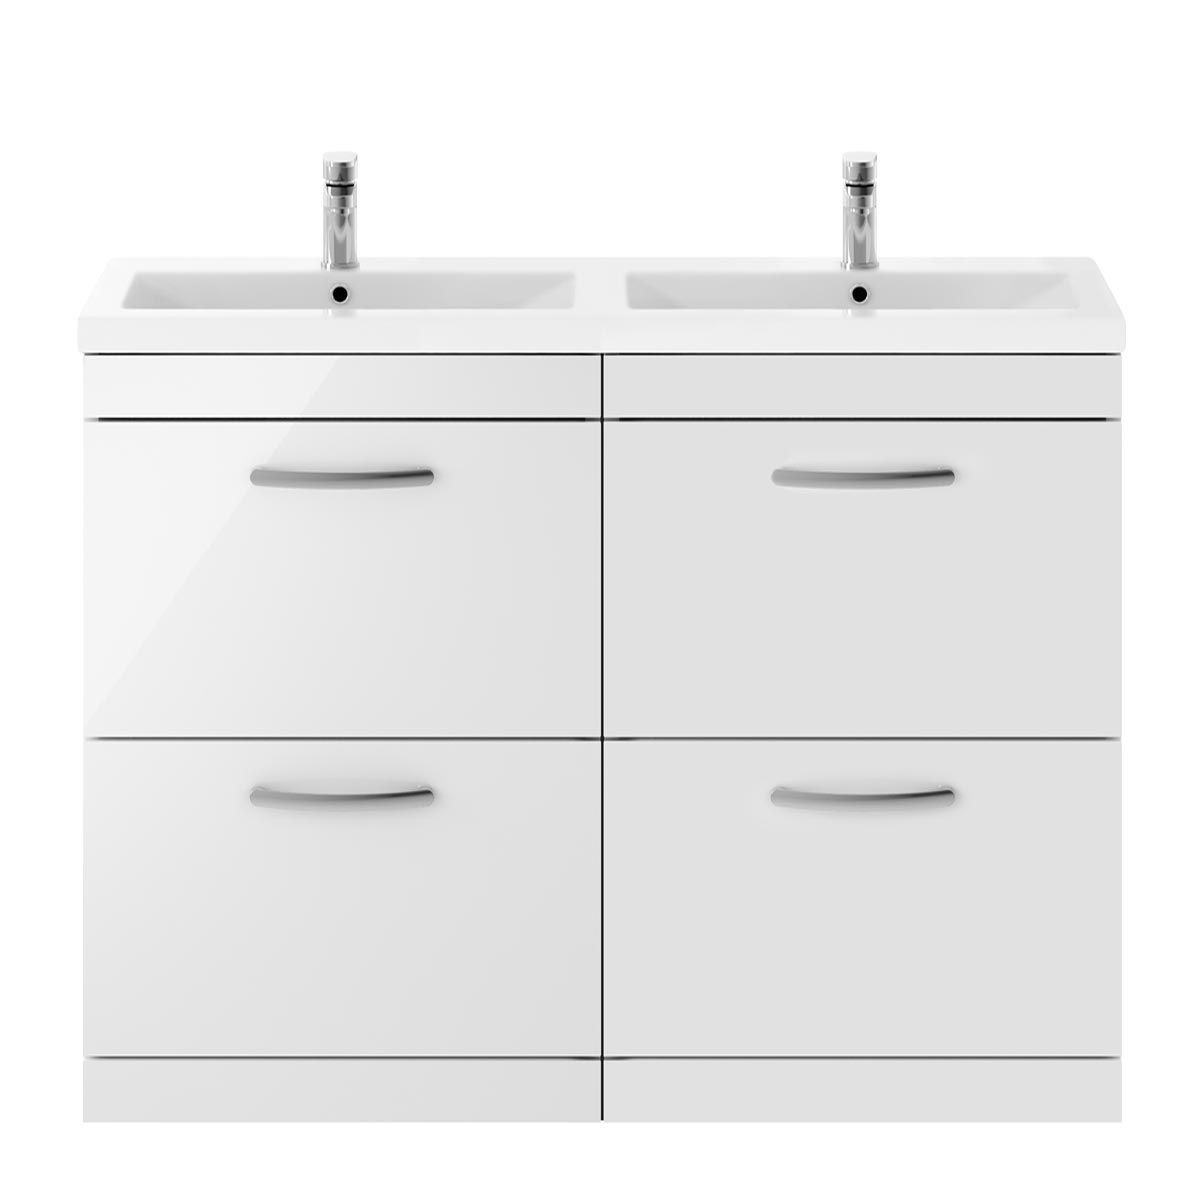 Nuie Athena Gloss White 4 Drawer Floor Standing Vanity Unit with Ceramic Double Basin 1200mm